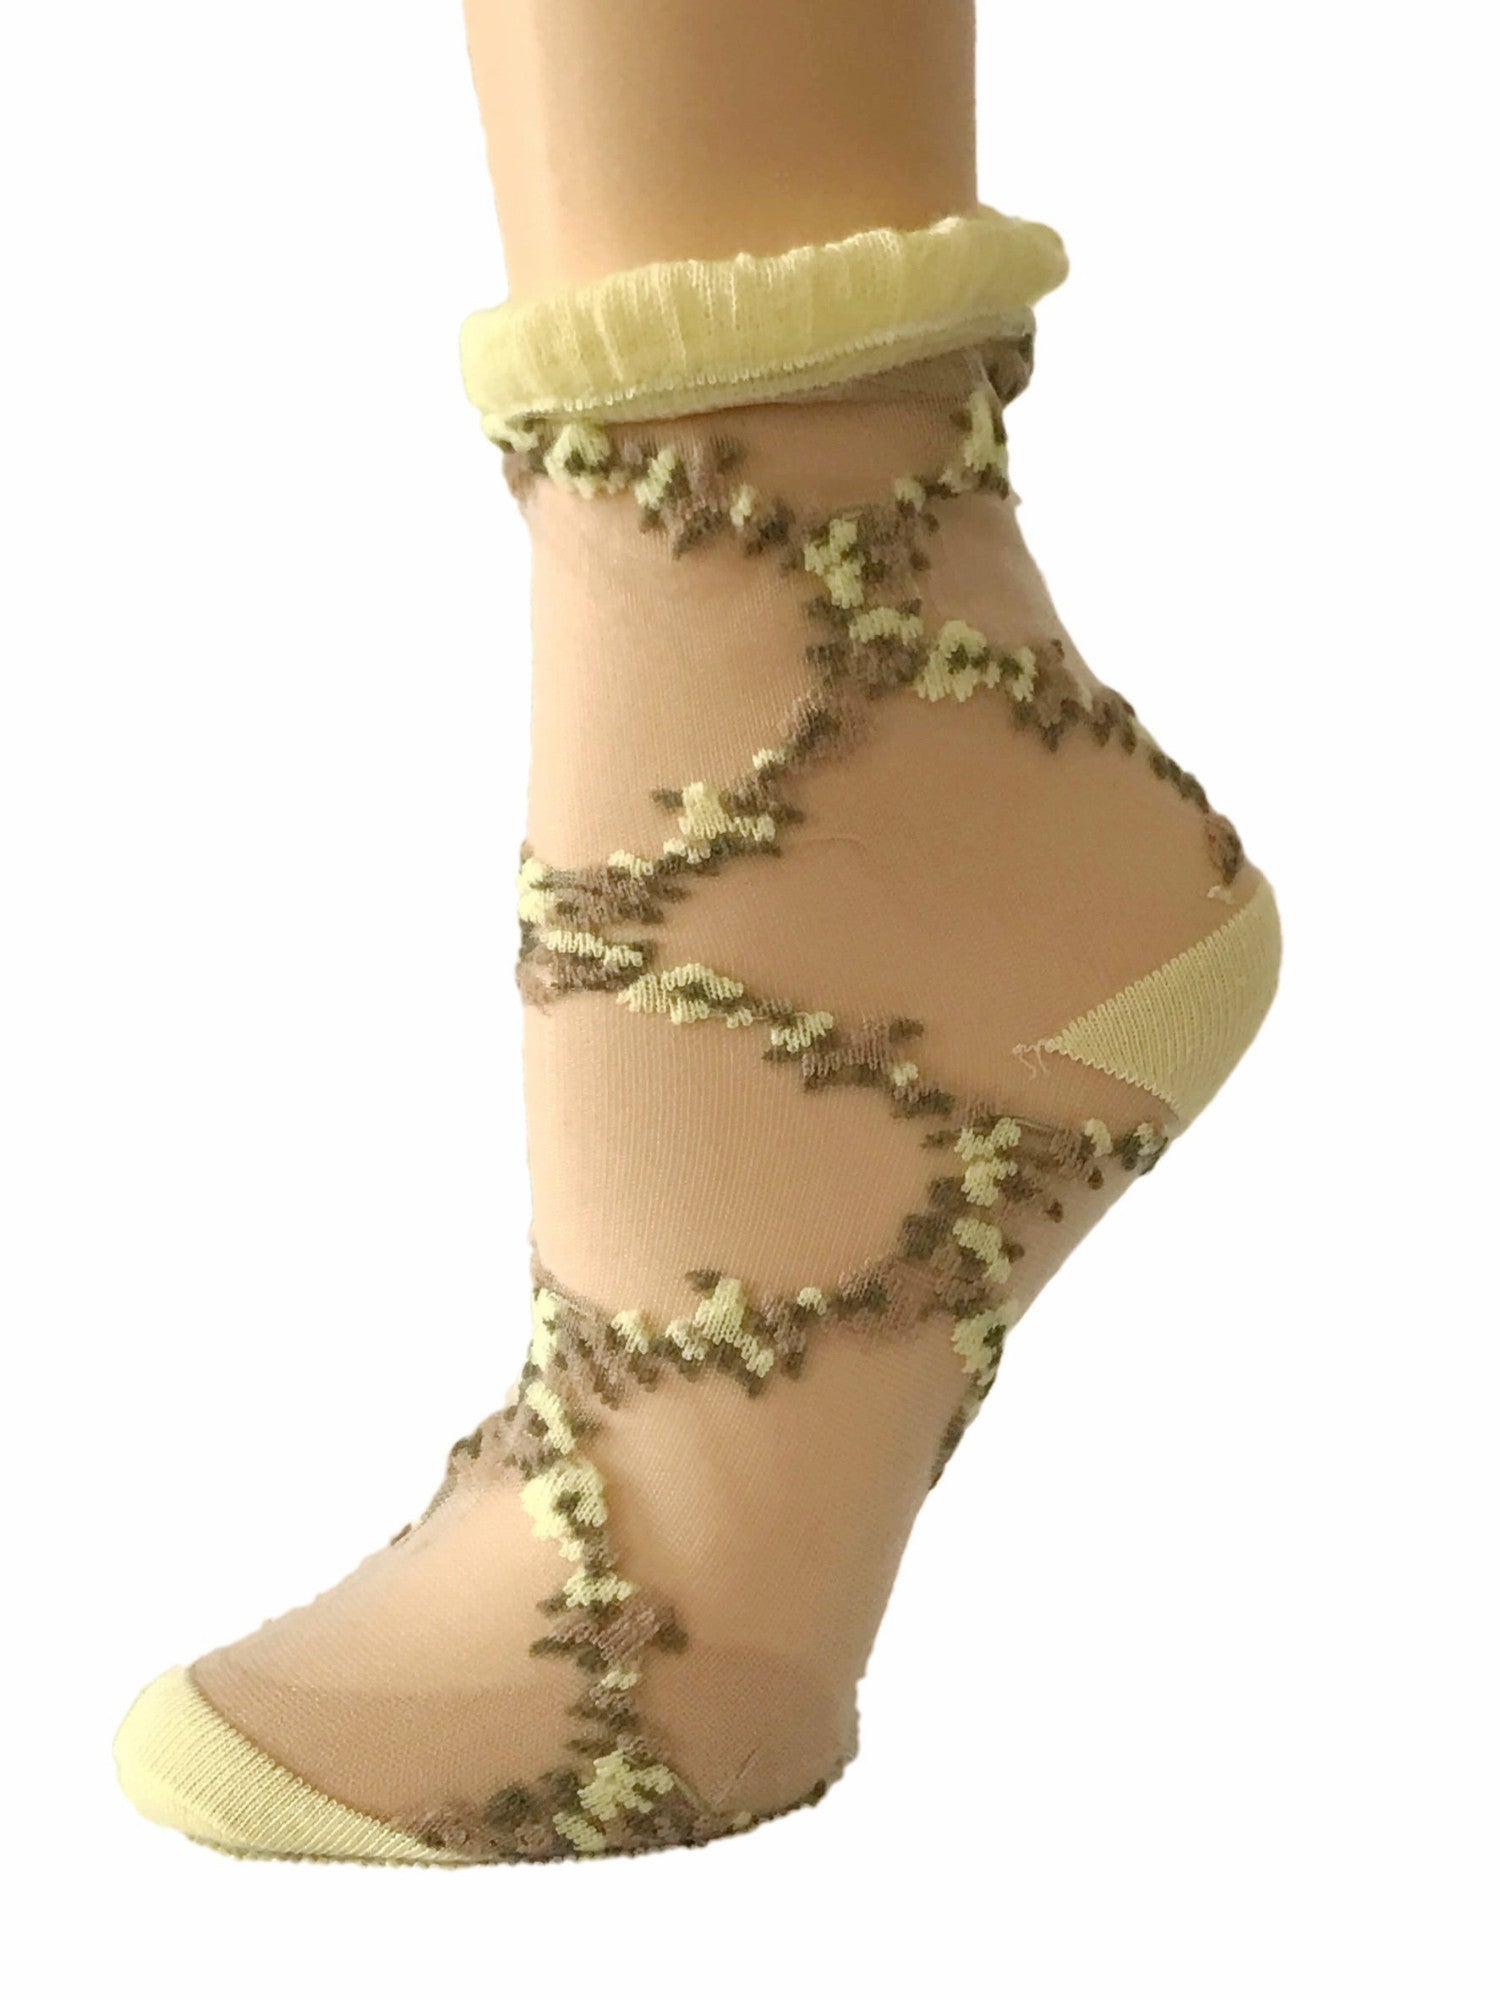 Stunning Black/Yellow patterned Sheer Socks-Global Trendz Fashion®